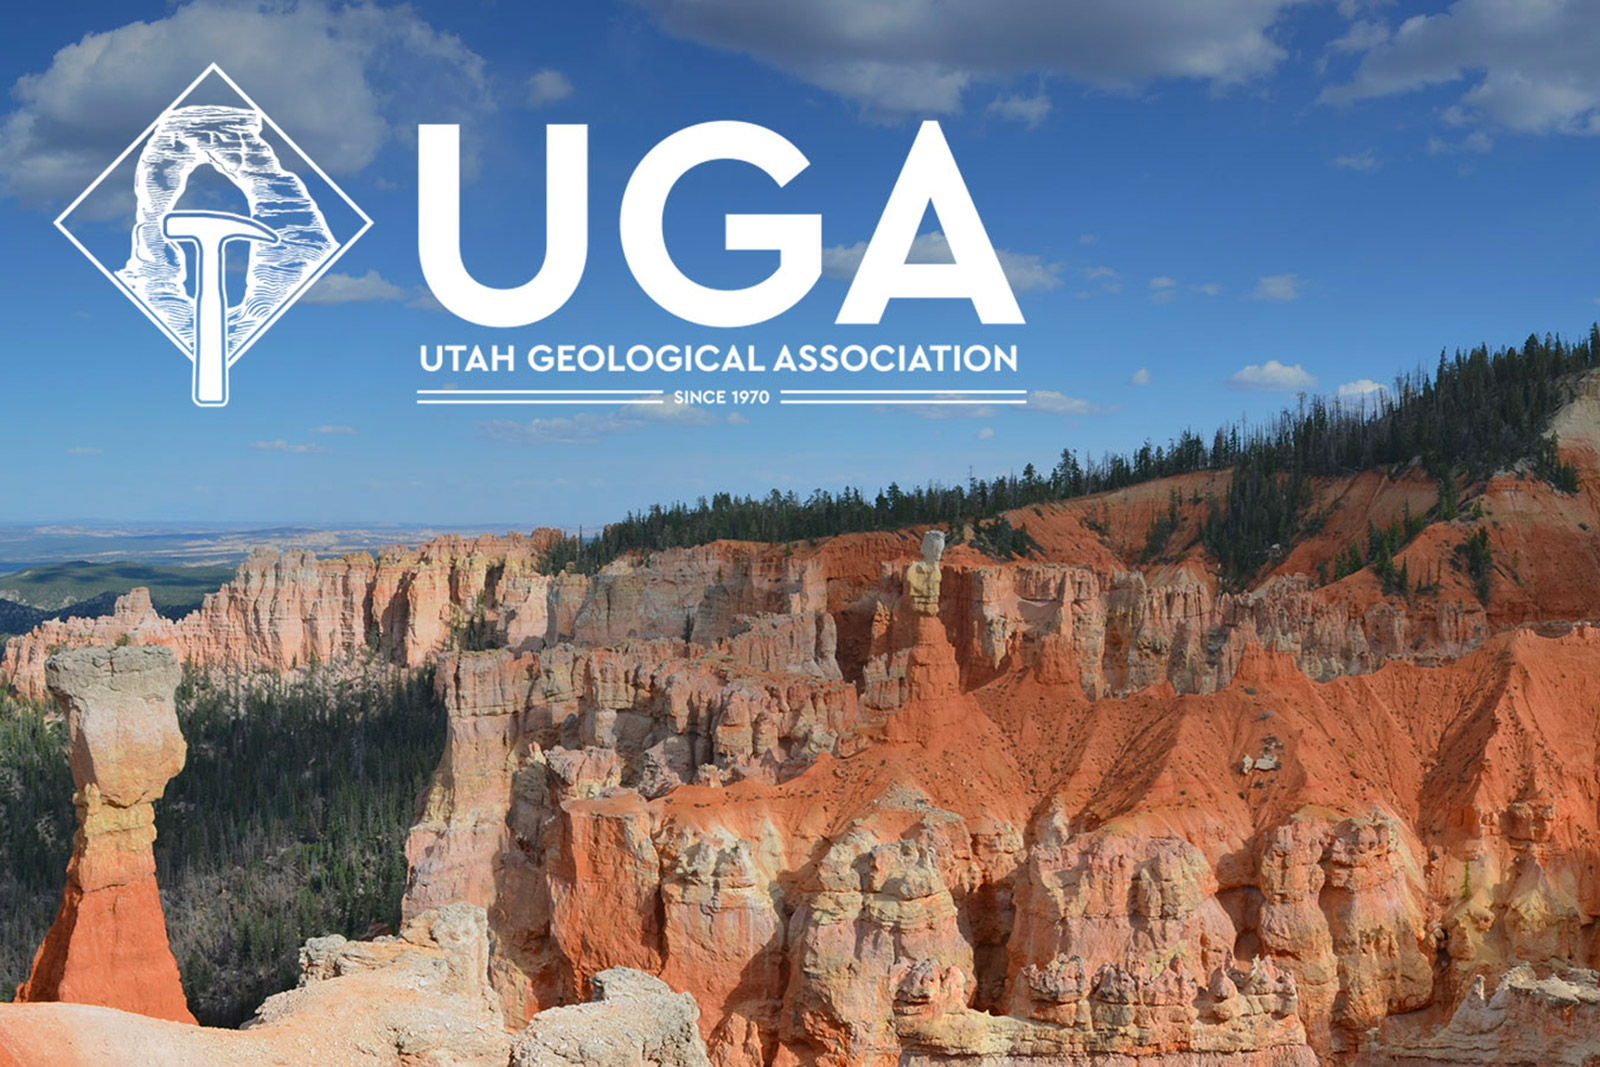 Utah Geological Association